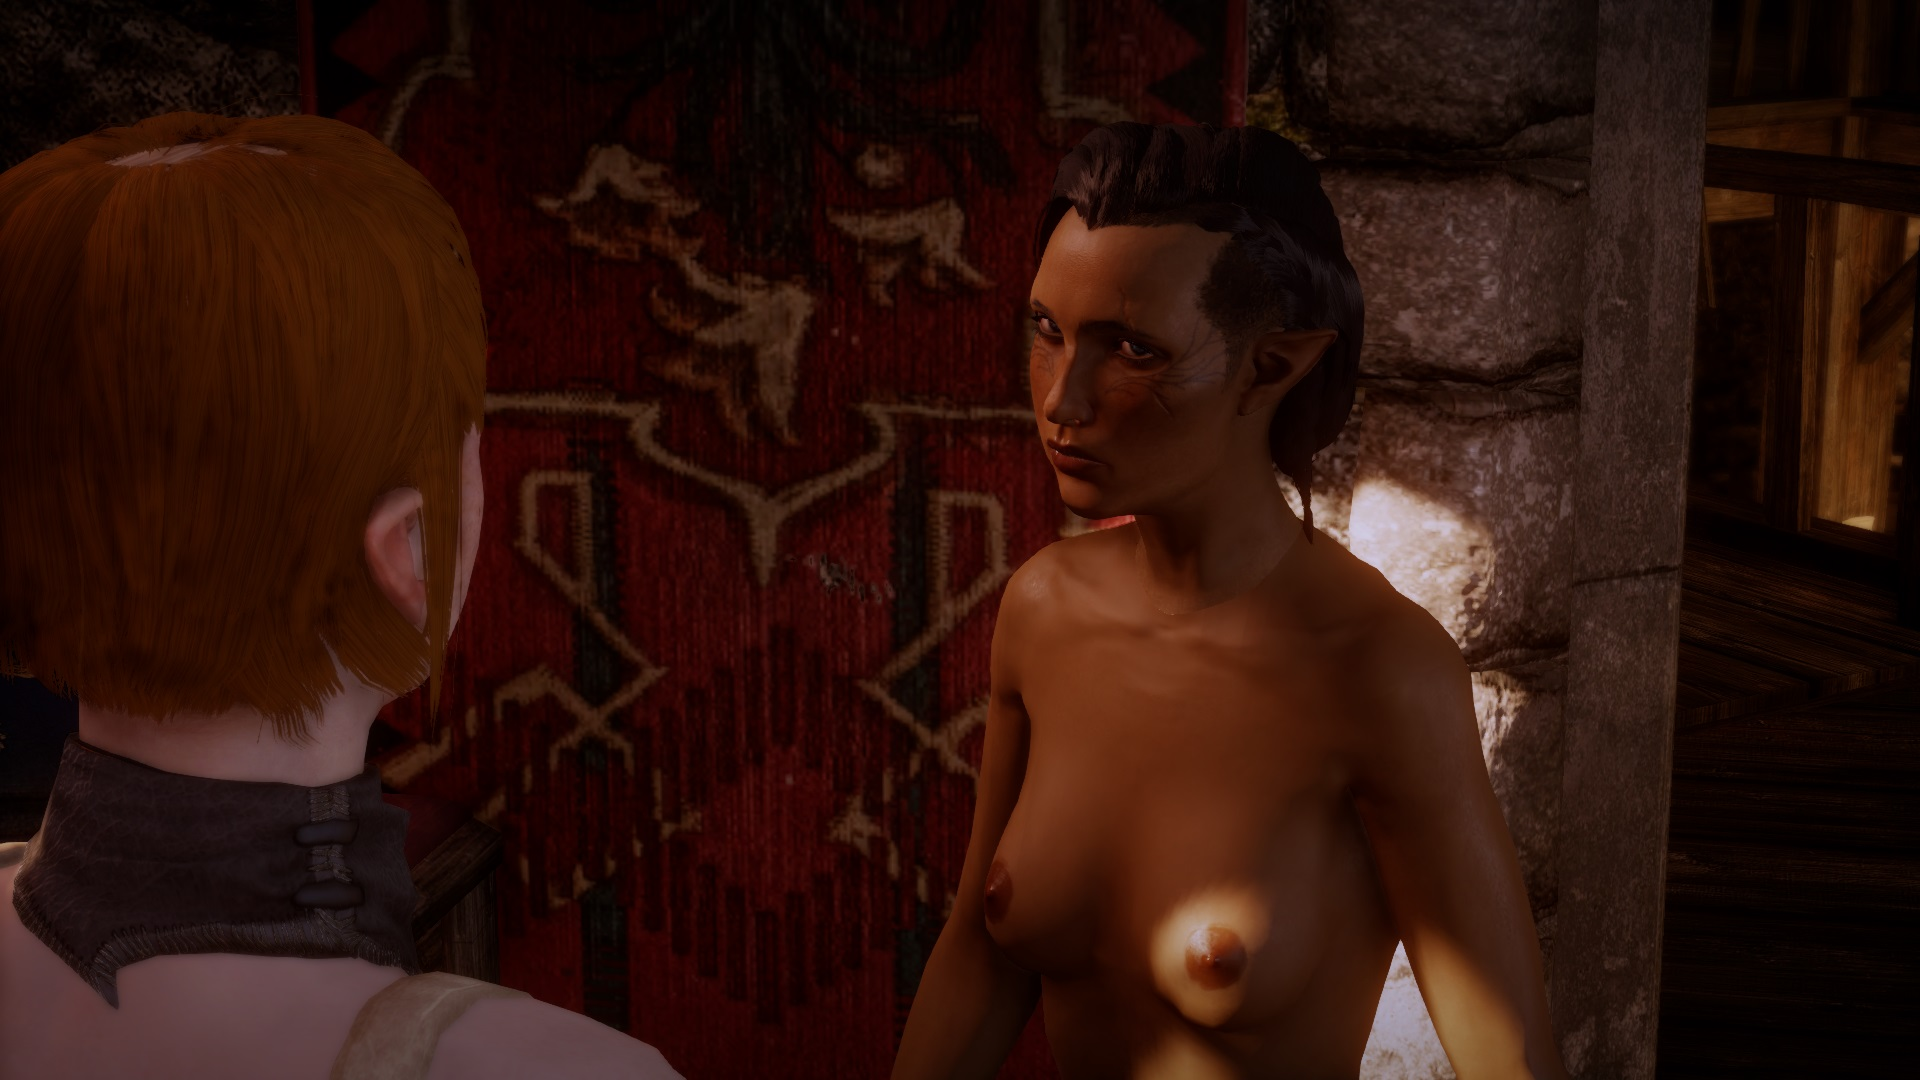 Dragon age 2 nude skins softcore beauties